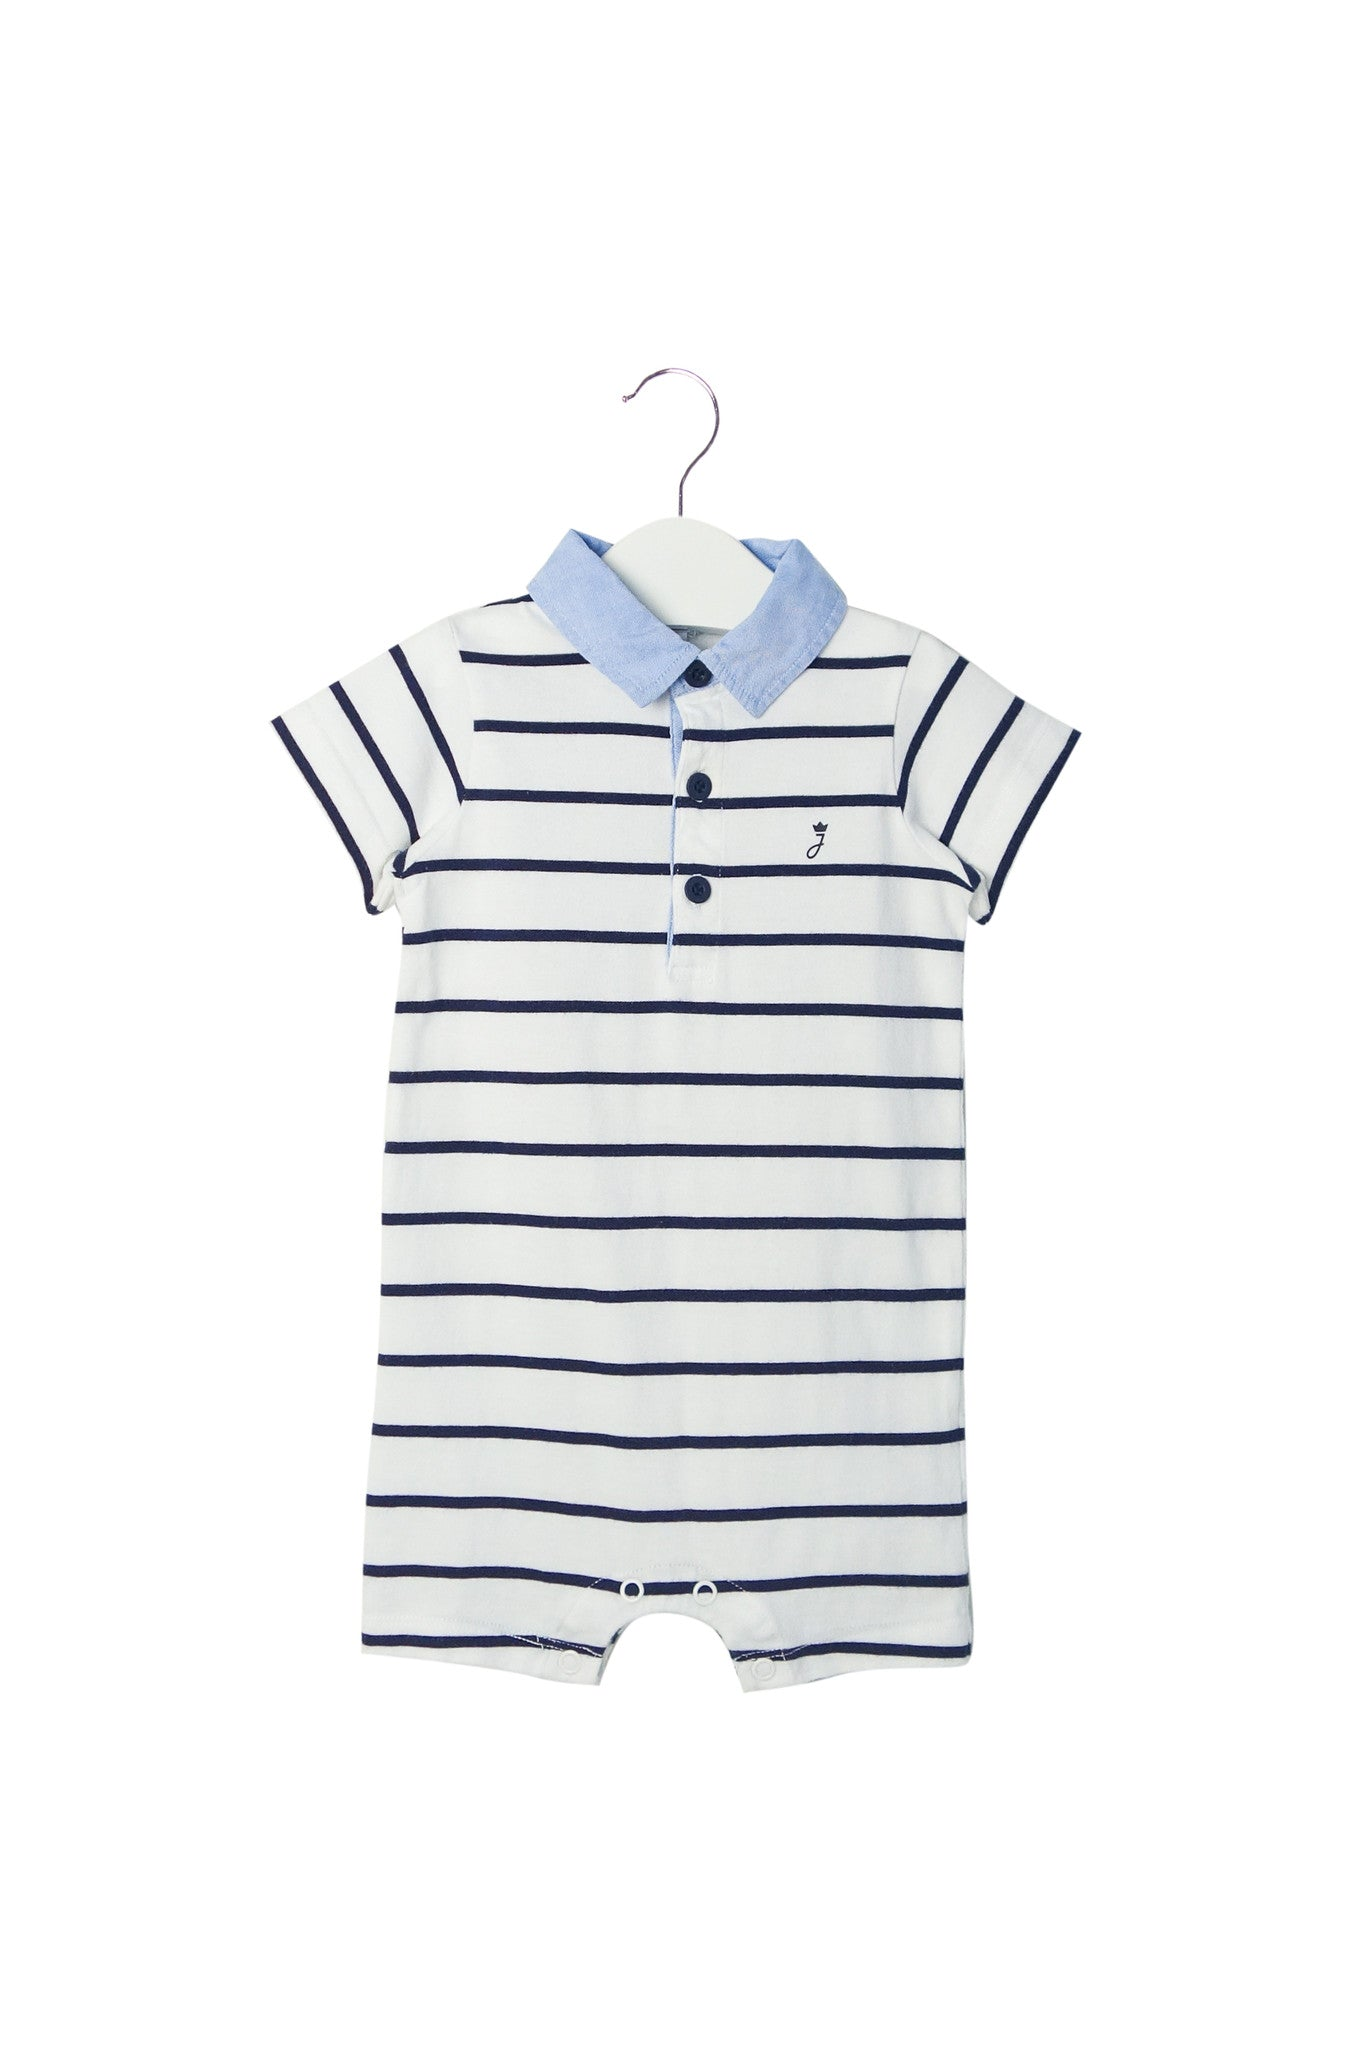 10003403 Jacadi Baby~Romper 12M at Retykle